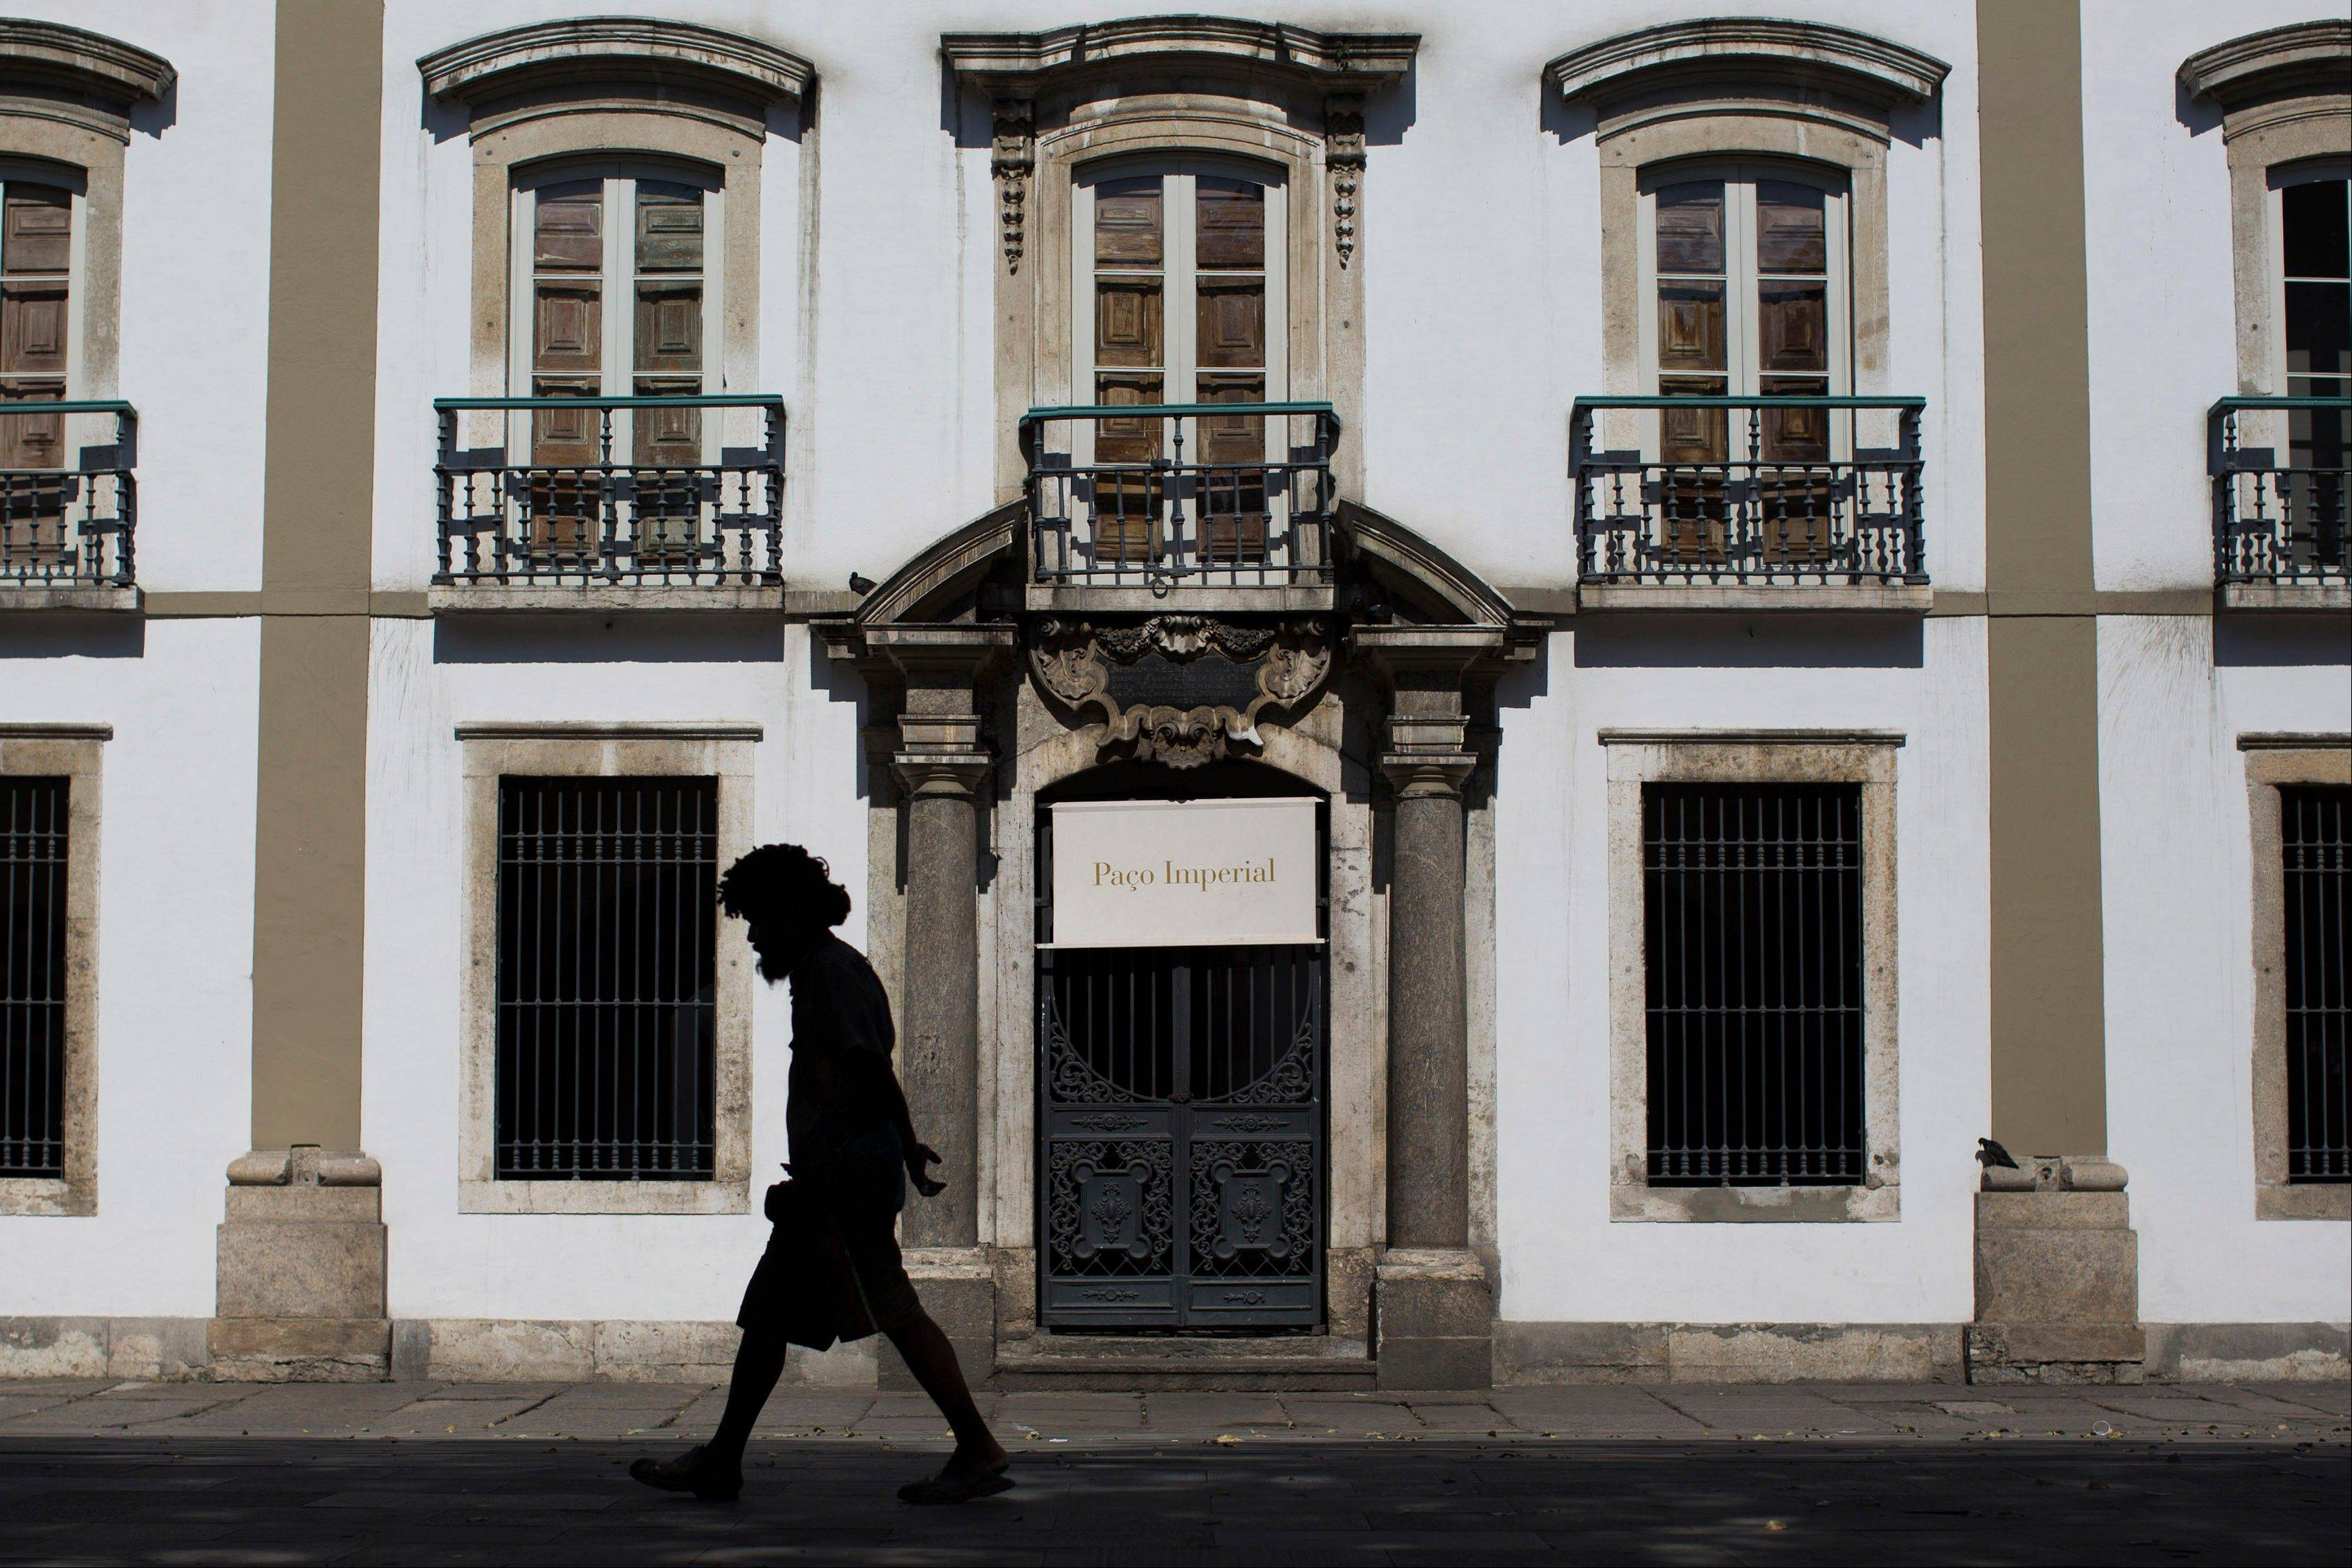 A man walks past the Paco Imperial or Royal Palace in Rio de Janeiro, the home where the Portuguese royal family settled when they fled Europe just ahead of Napoleon's advancing troops.